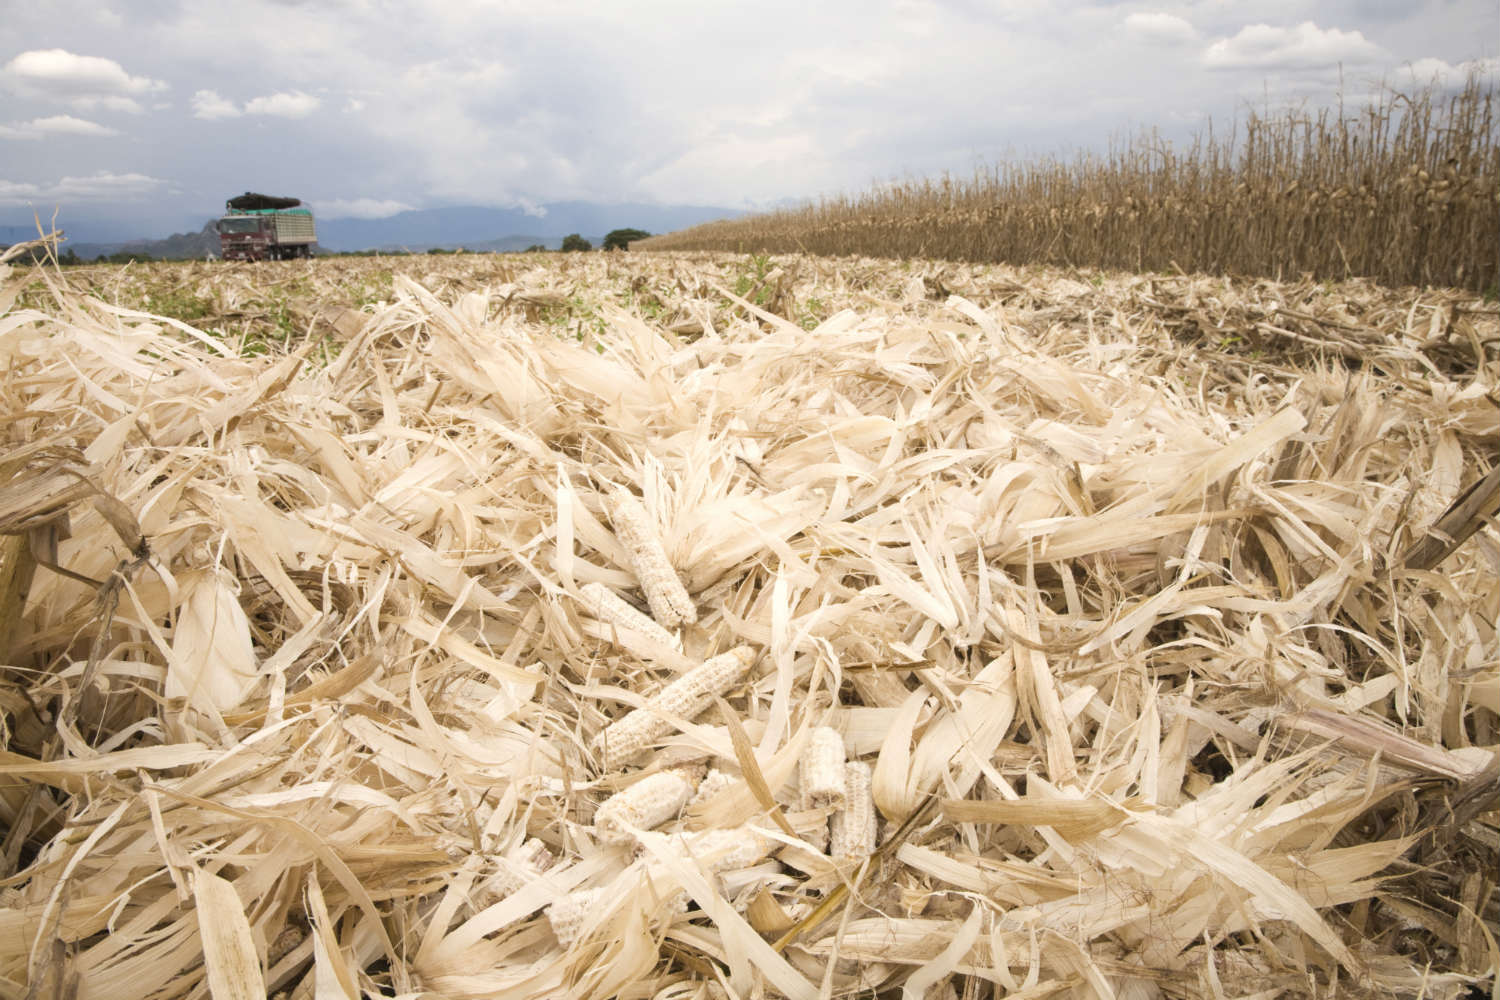 New research shows that next-generation biofuels made from corn waste aren't so green